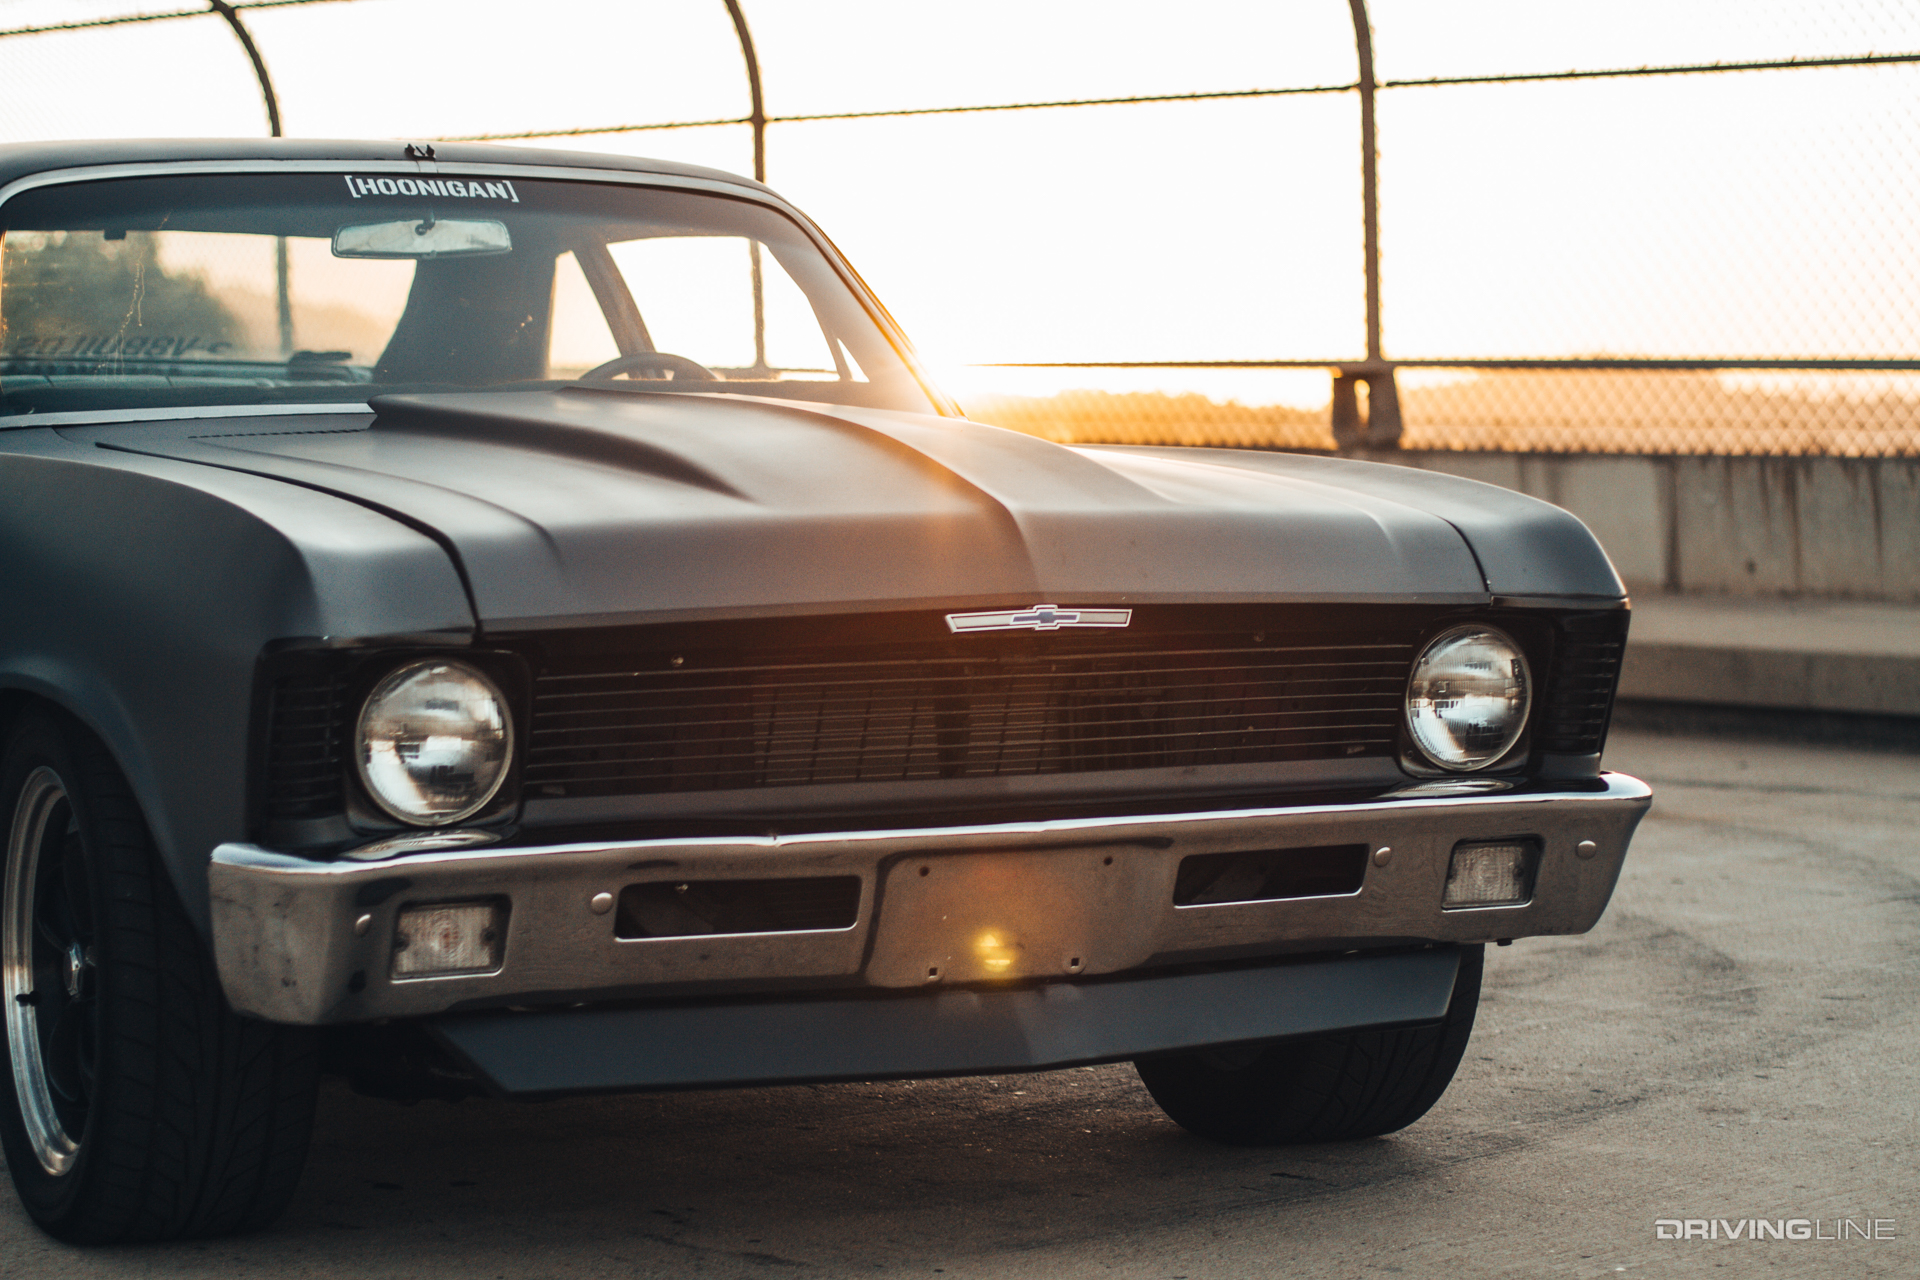 Ride of the Week: A Made-For-Thrills '70 Chevy Nova | DrivingLine